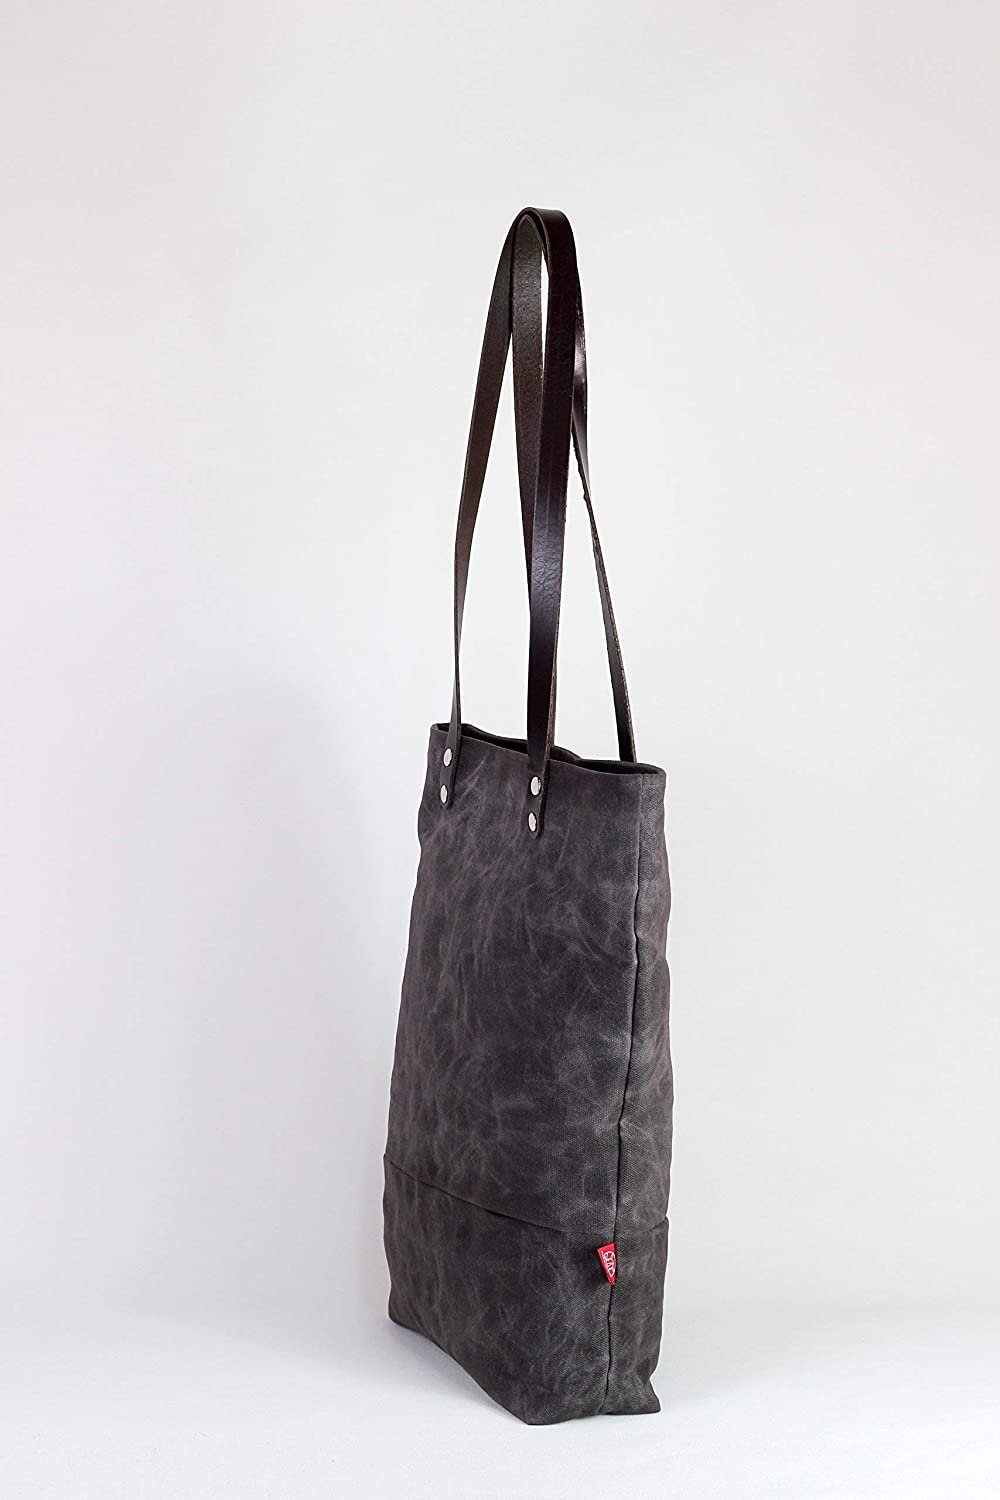 b798927aa7a7 Amazon.com  Dark brown waxed canvas tote bag with leather strap shoulder  use magnetic snap closure fully cotton lined simply minimalist large   Handmade